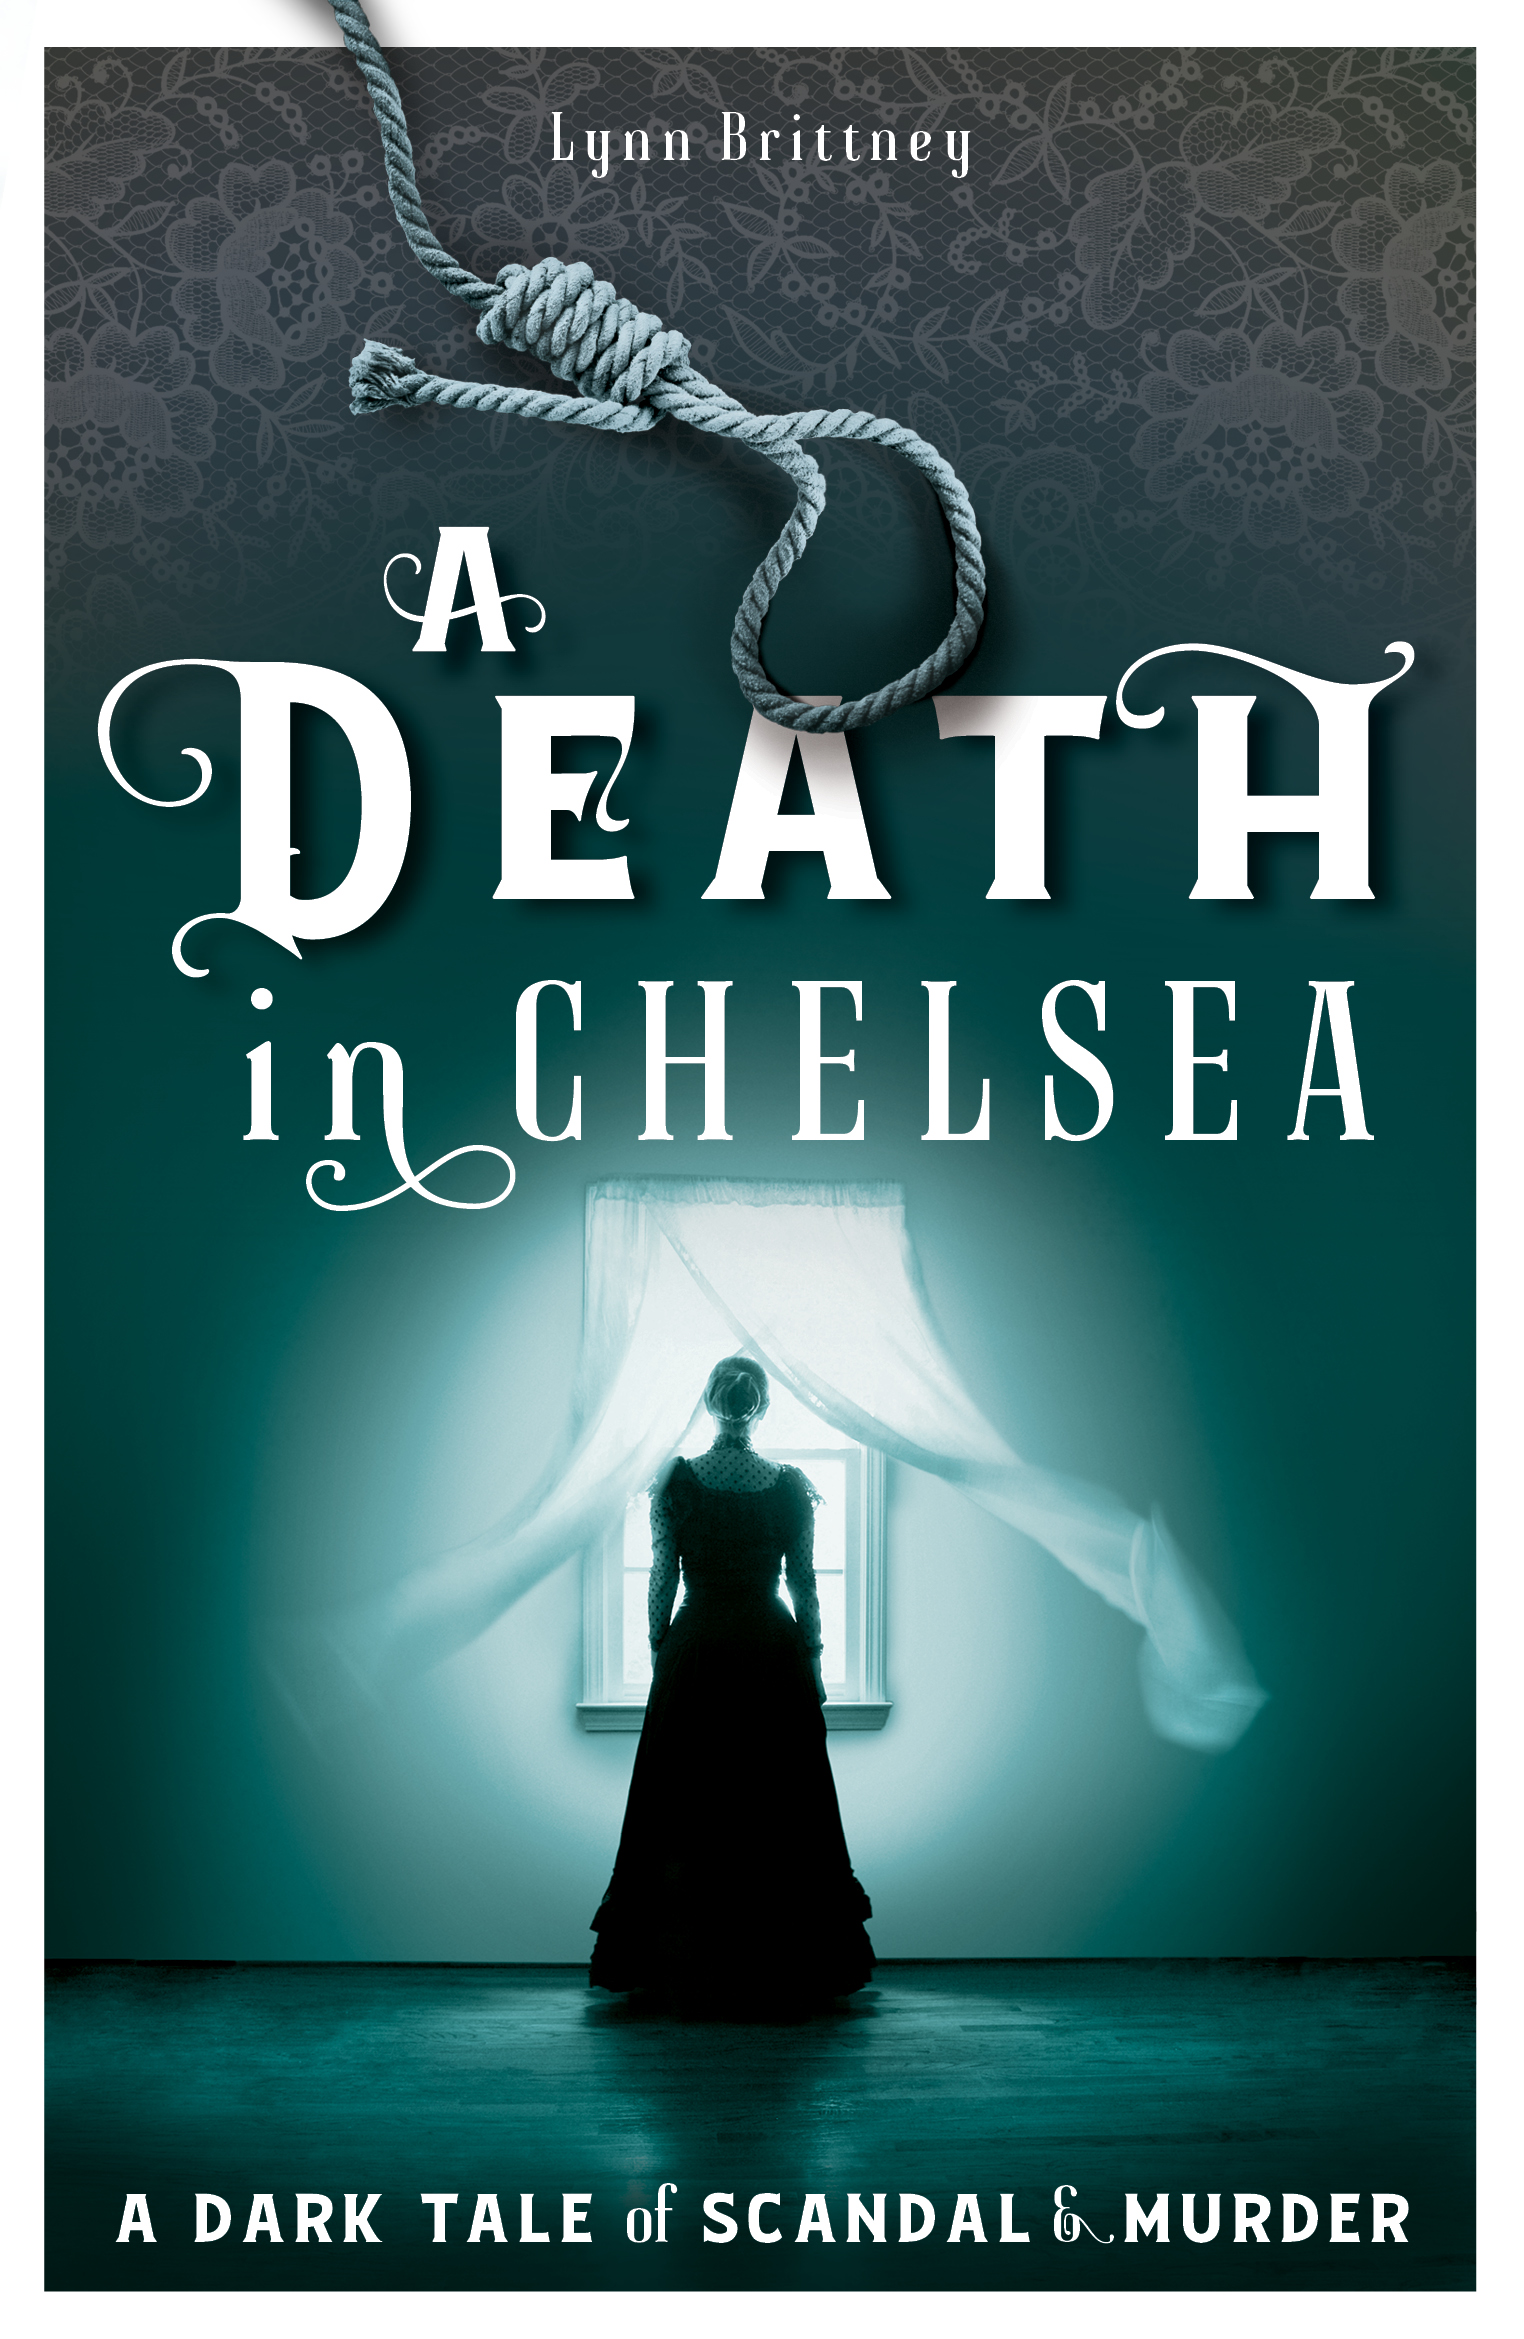 Death in chelsea